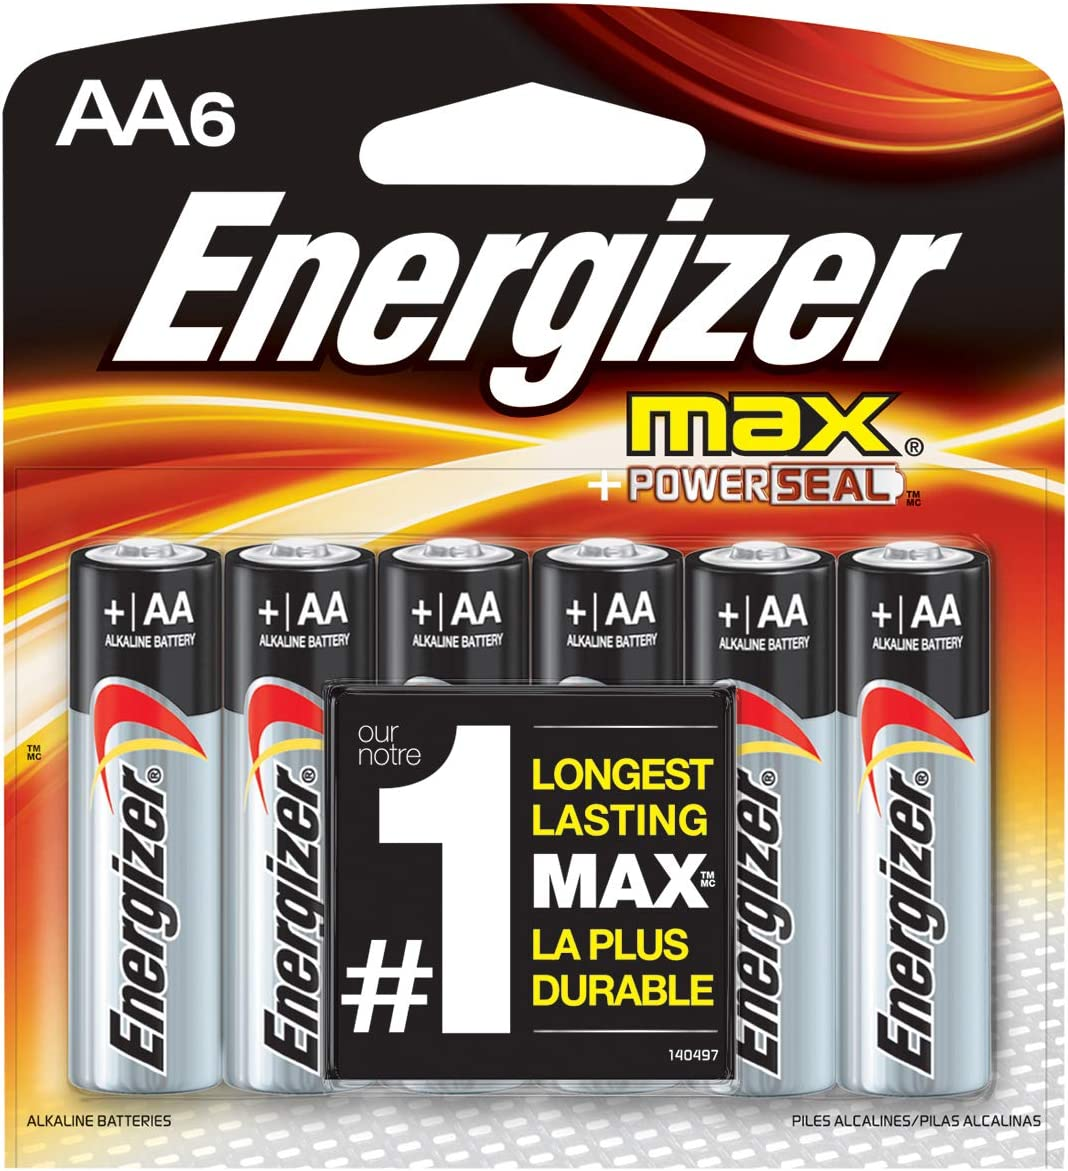 180 Energizer AA Max Alkaline 1.5V Batteries (6x30 Pack) Retail Packaging